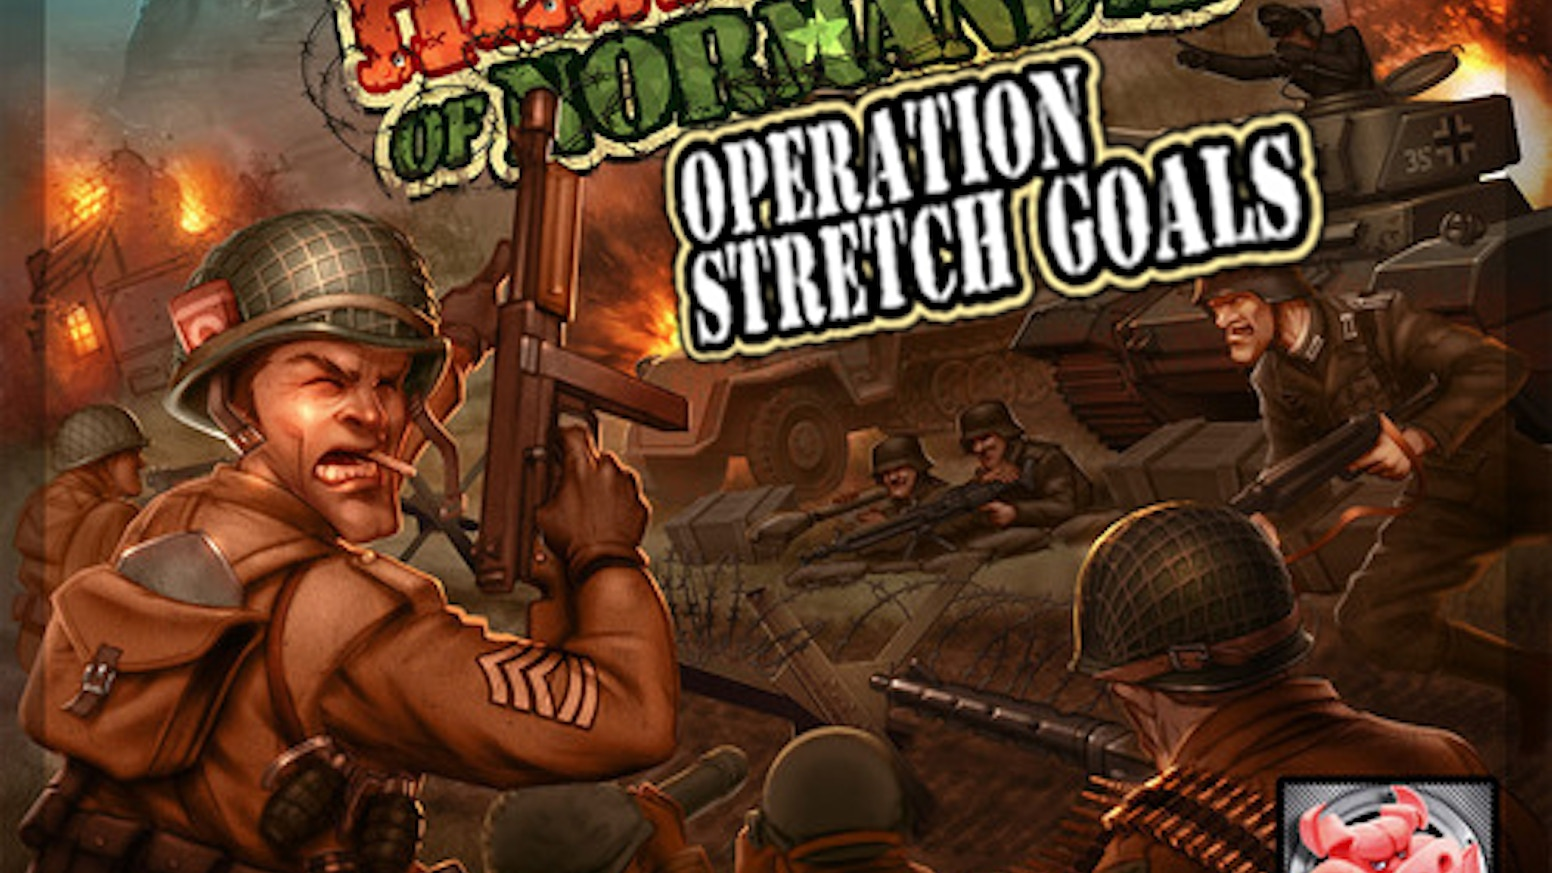 A game of heroic tactical warfare inspired by Hollywood world war II movies (with blood, guts and devil pigs...).